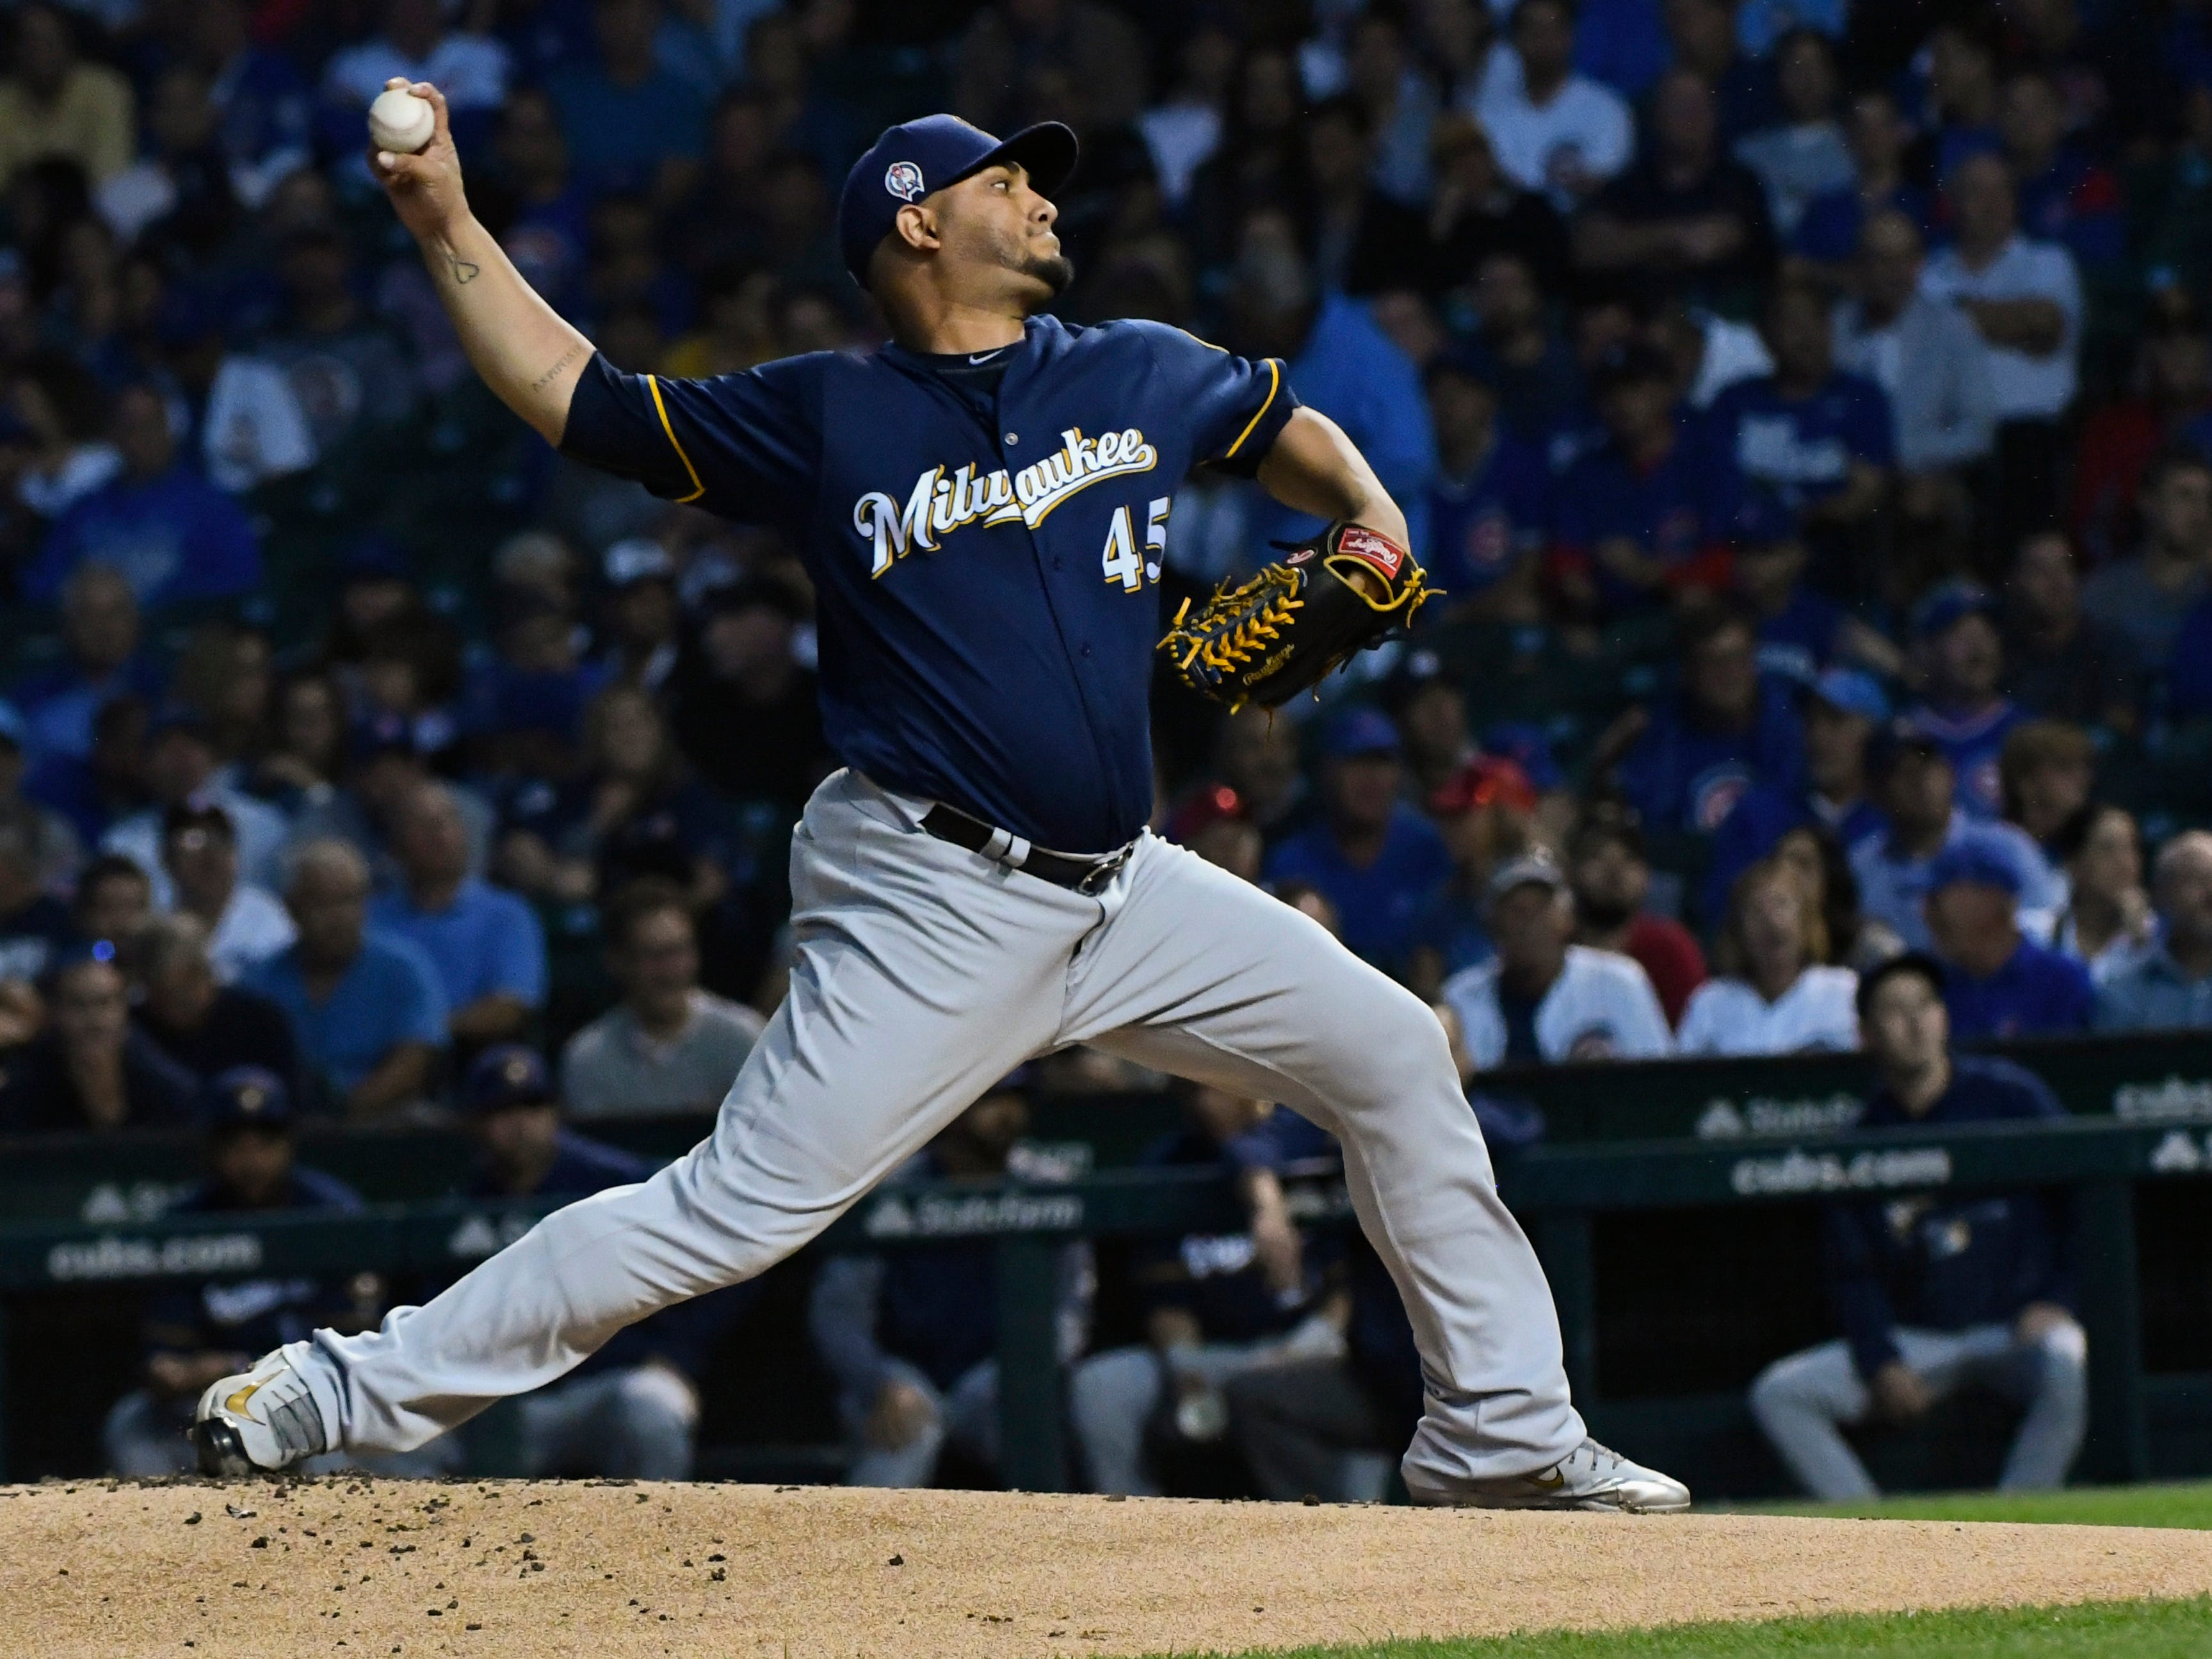 Brewers starting pitcher Jhoulys Chacin gave up just one hit in five innings.